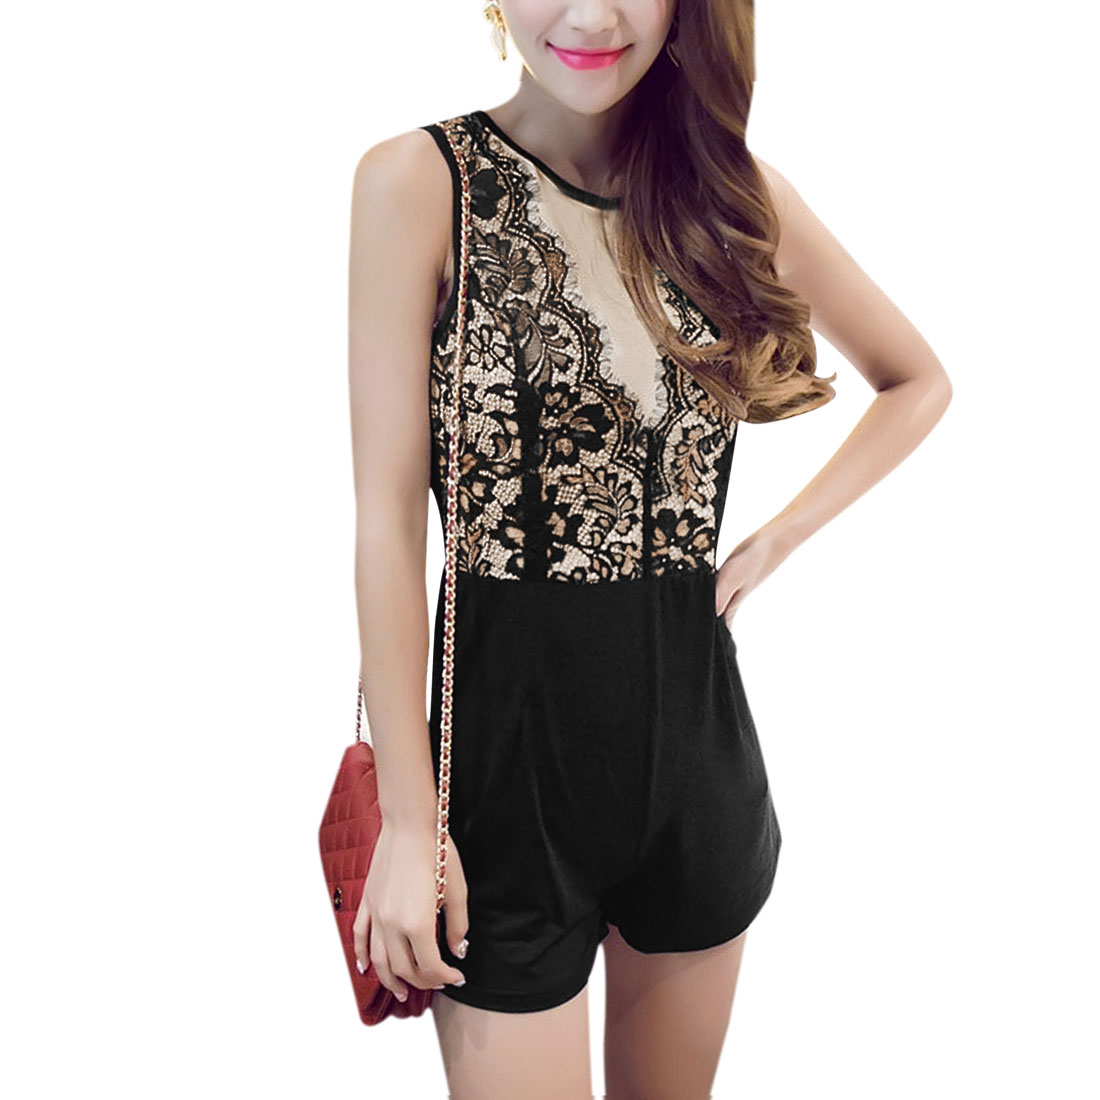 Women's Floral Design Lace Panel Cut Out Back Sleeveless Romper Black Beige S